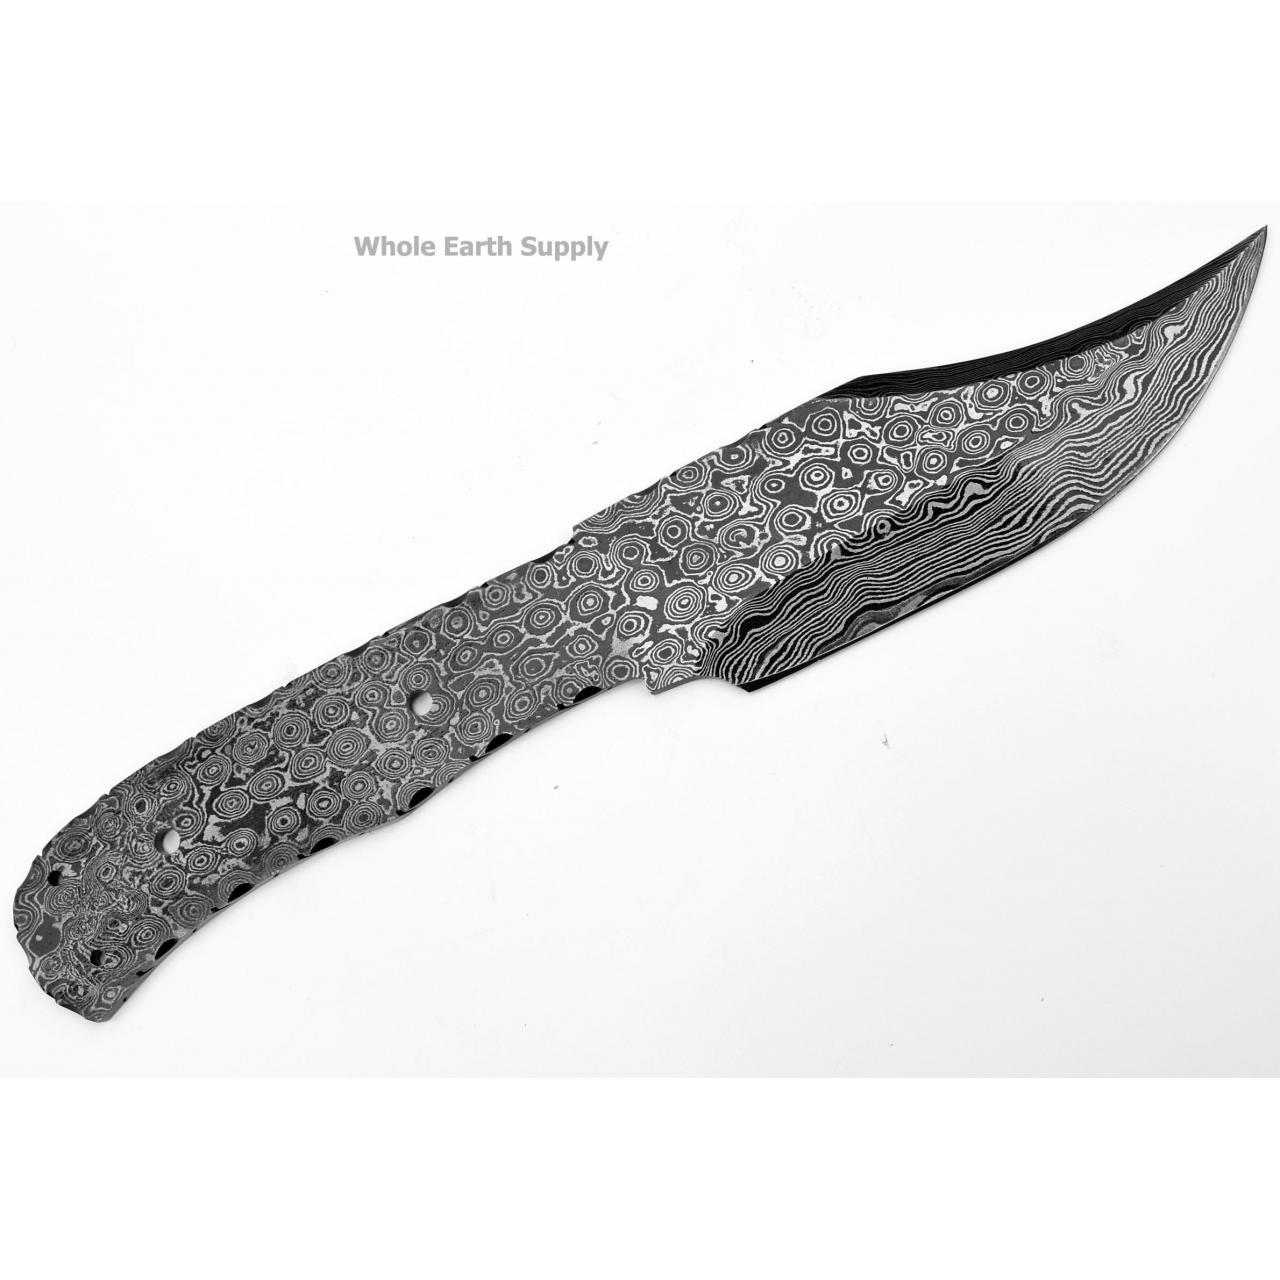 Quality Damascus Hunting Blanks Model: H-BLANK-41 for sale